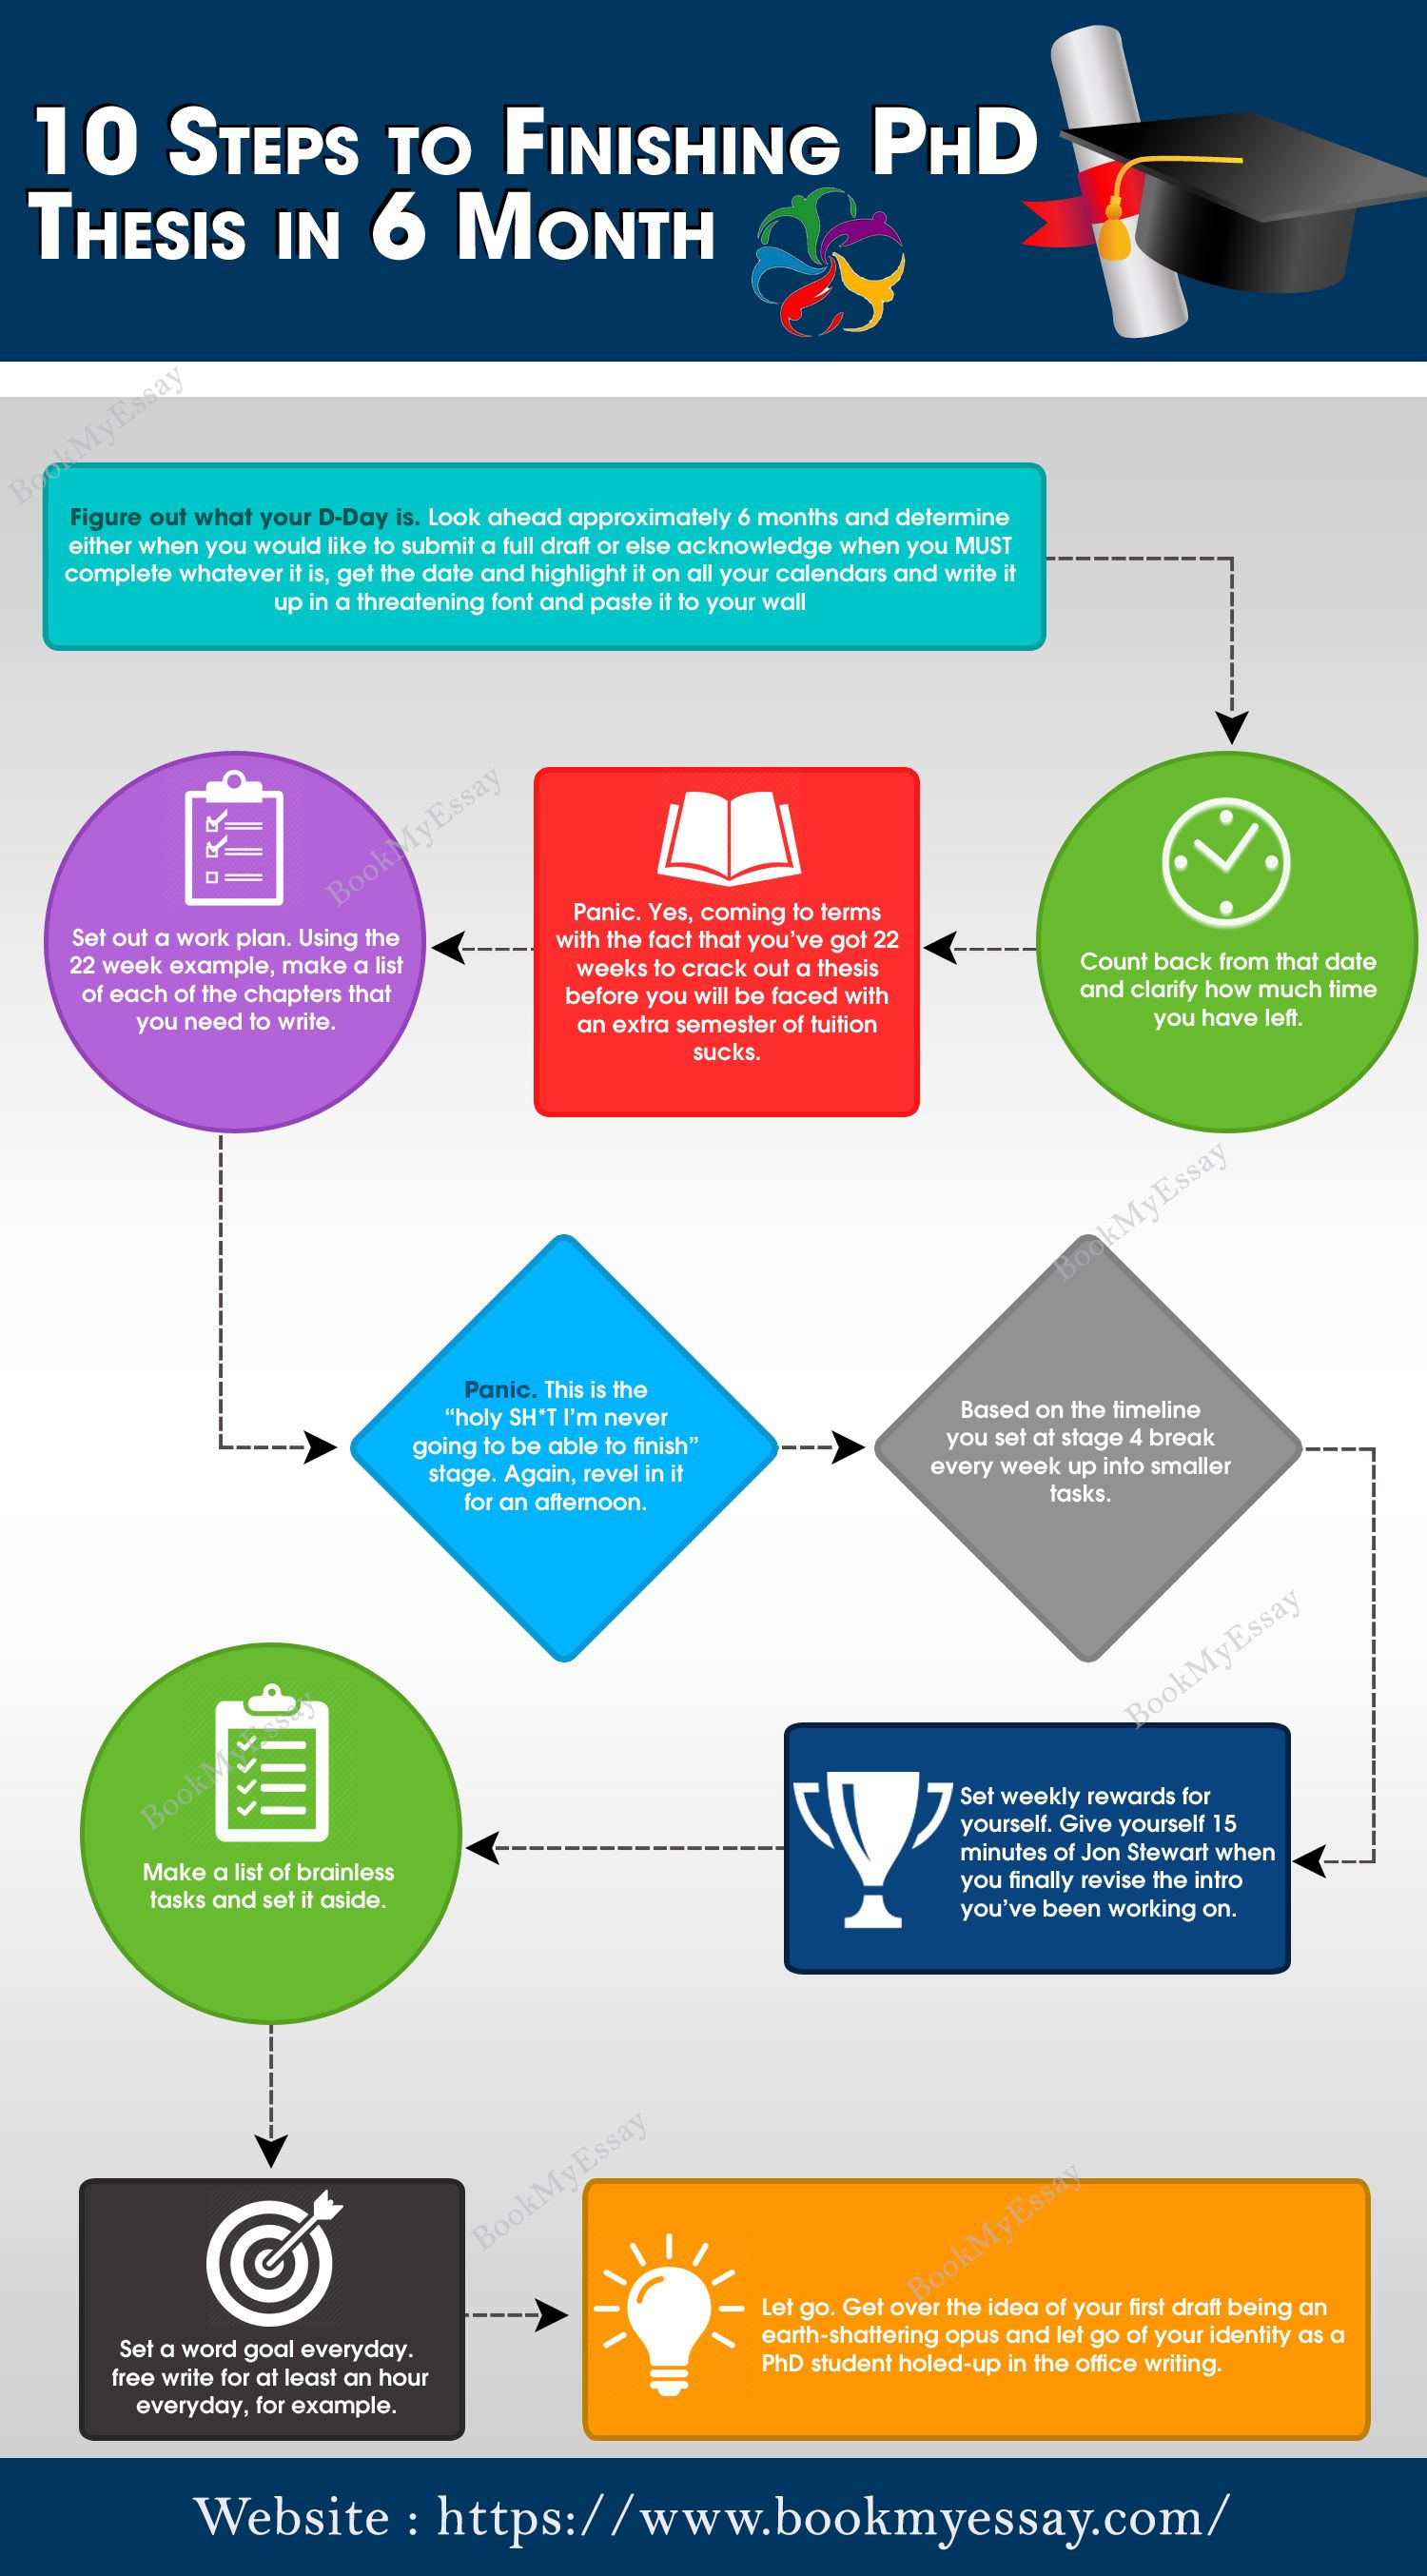 10 tips for writing a PhD thesis